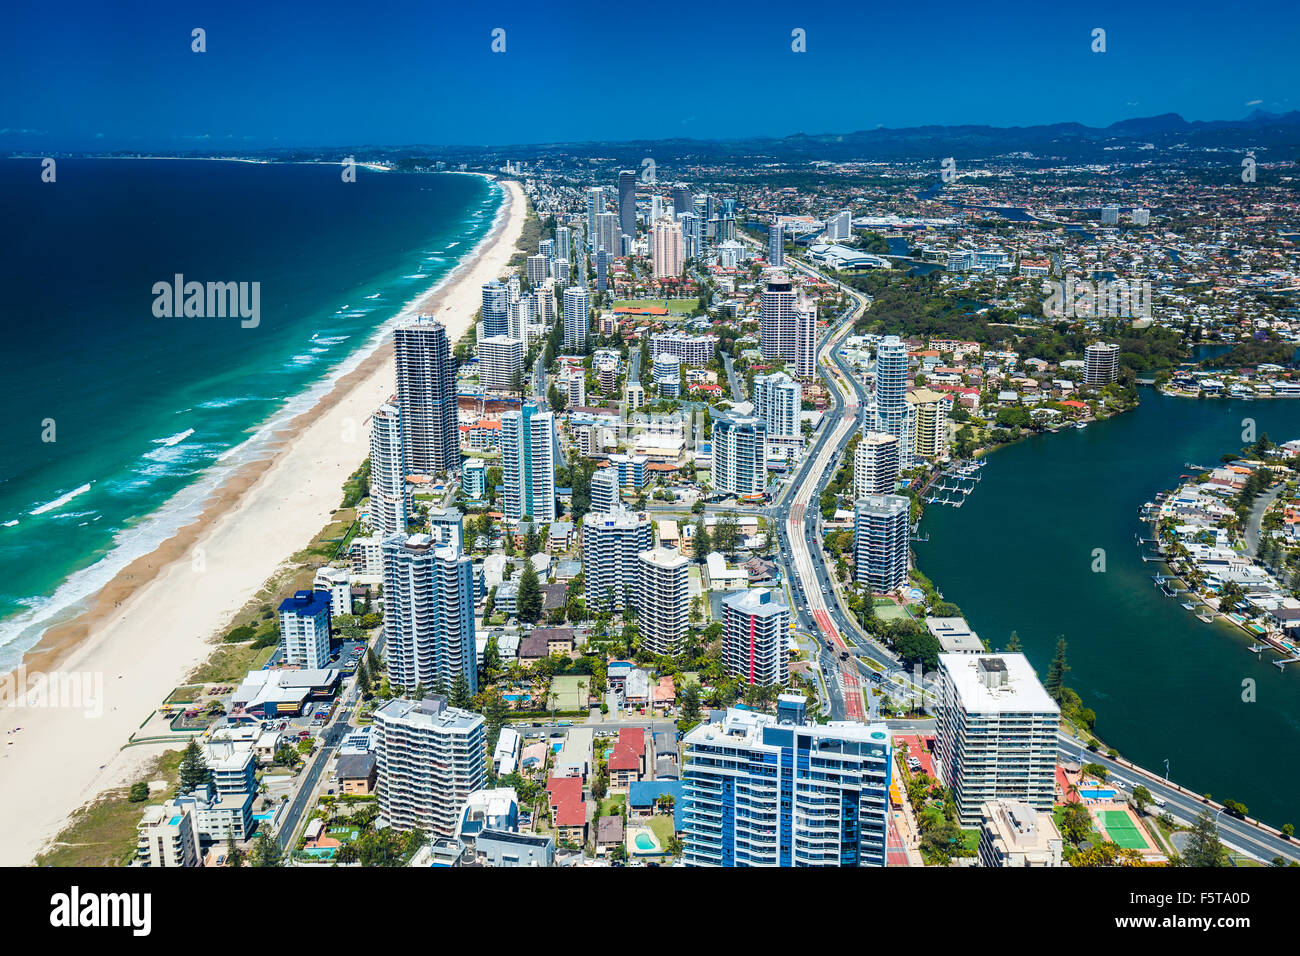 GOLD COAST, AUS - OCT 04 2015: Aerial view of the Gold Coast in Queensland Australia looking from Surfers Paradise Stock Photo